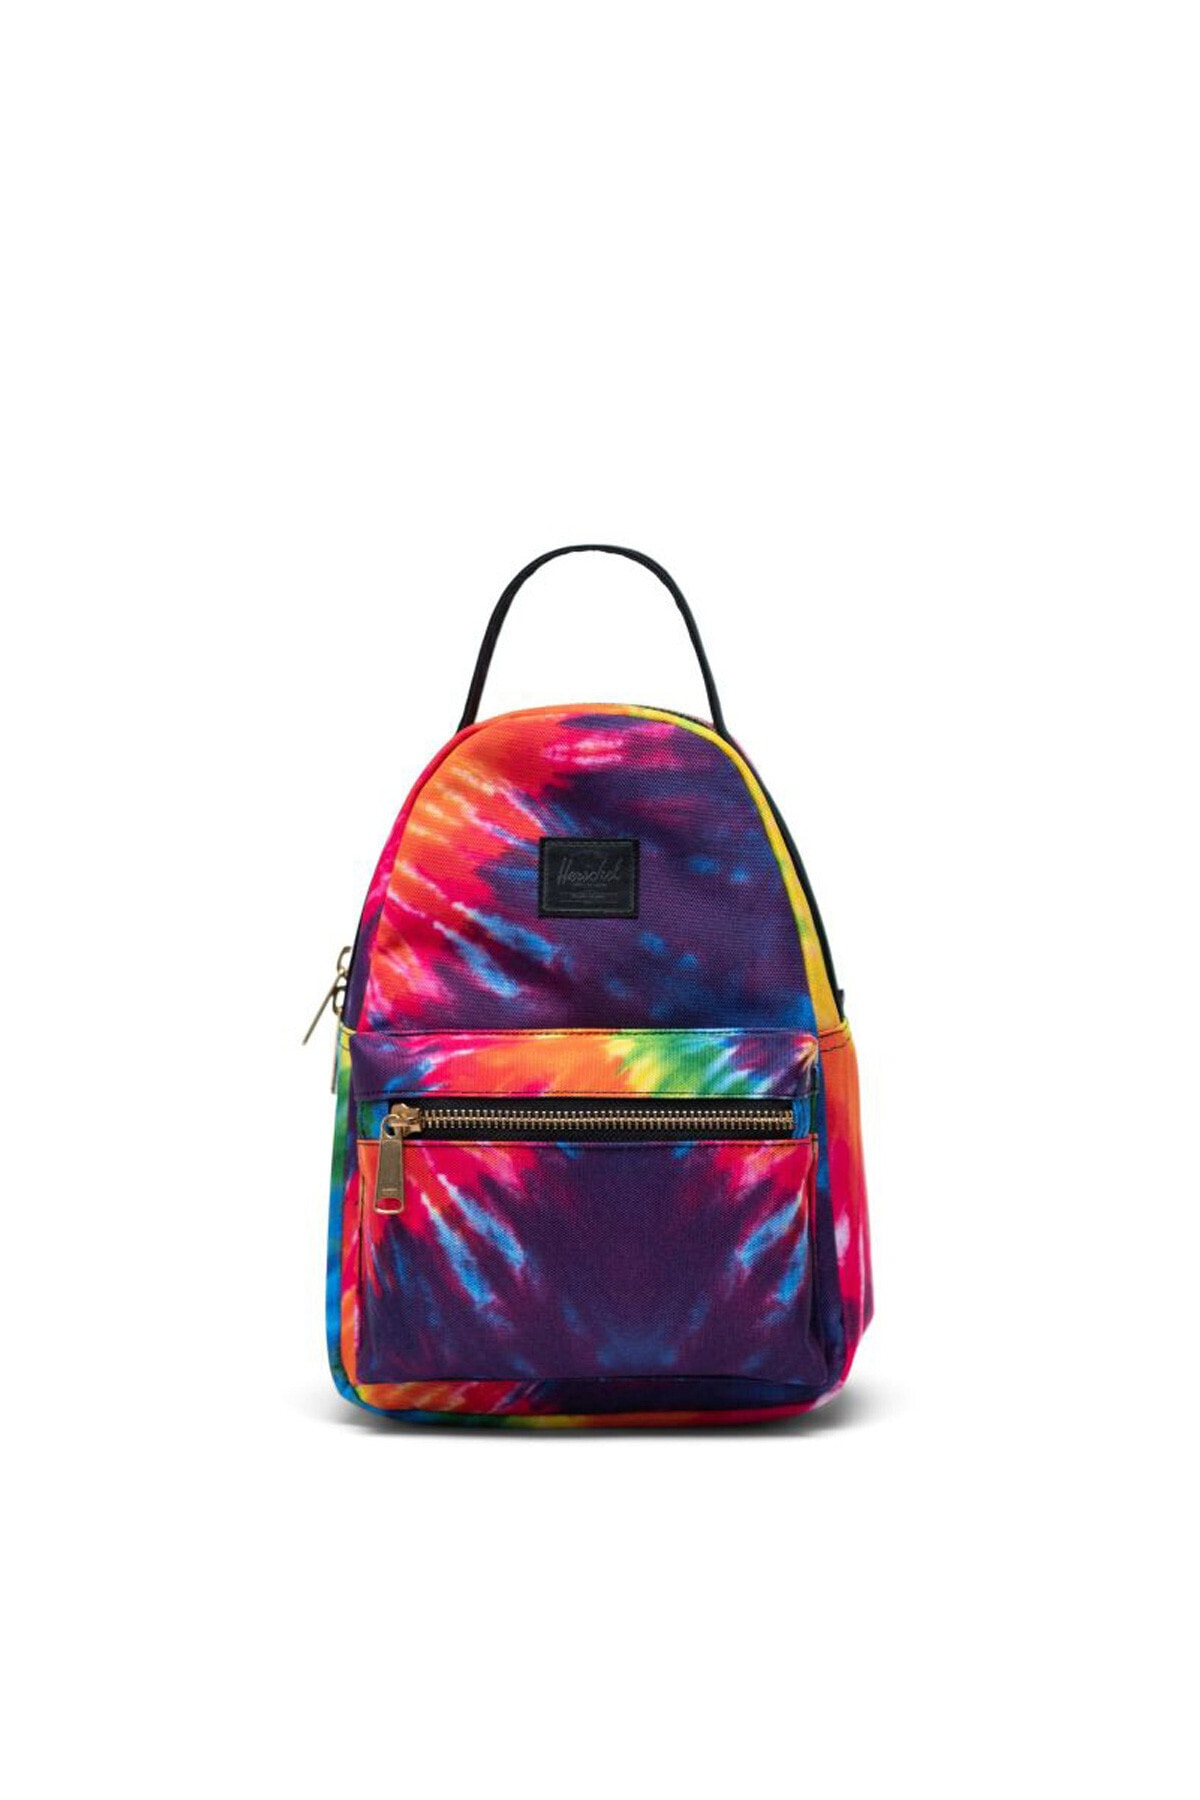 Herschel Supply Co. Herschel Nova Mini Rainbow Tie Dye Sırt Çantası 10501-03561-os 1